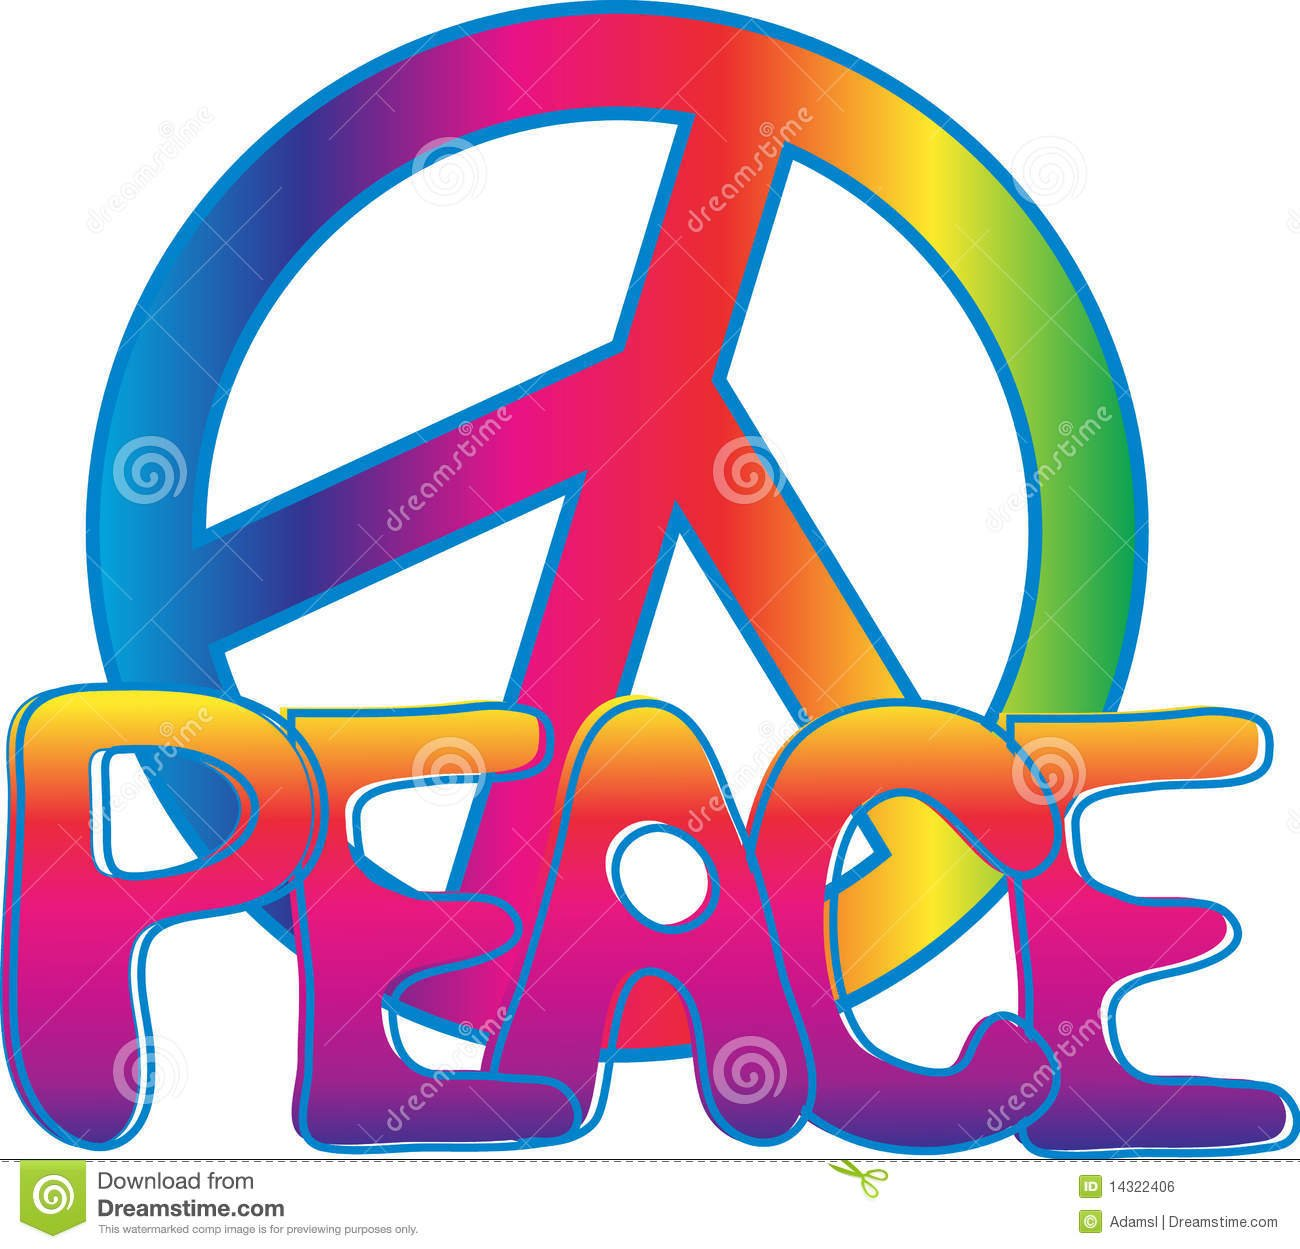 Colorful Peace Signs Wallpaper WallpaperSafari